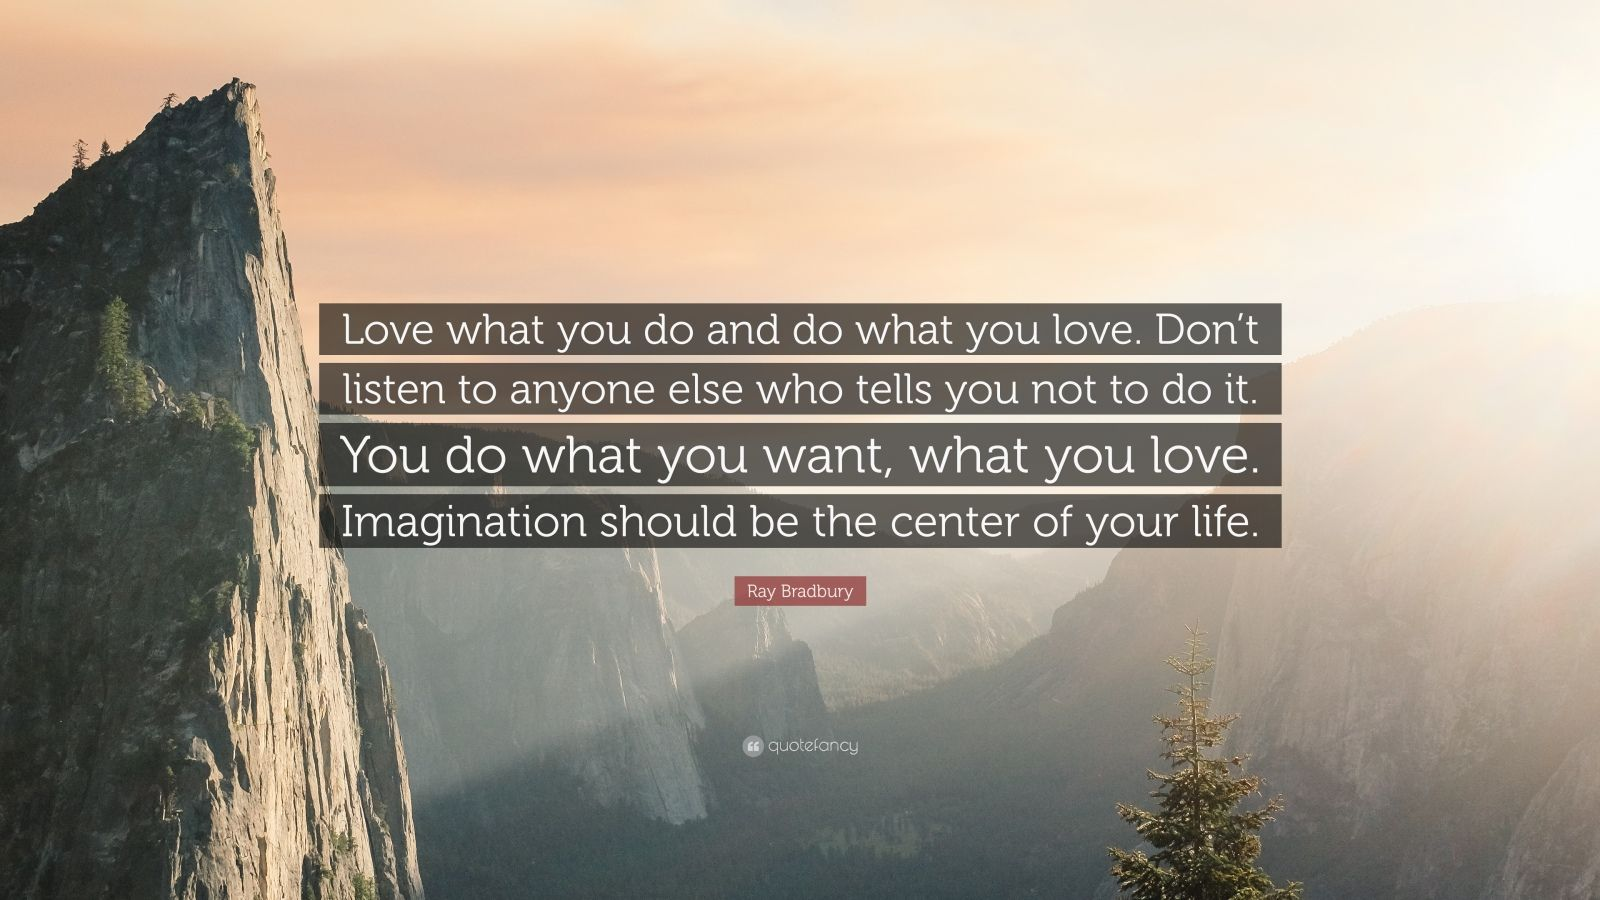 """Ray Bradbury Quote: """"Love what you do and do what you love. Don't listen to anyone else who tells you not to do it. You do what you want, what you love. Imagination should be the center of your life."""""""